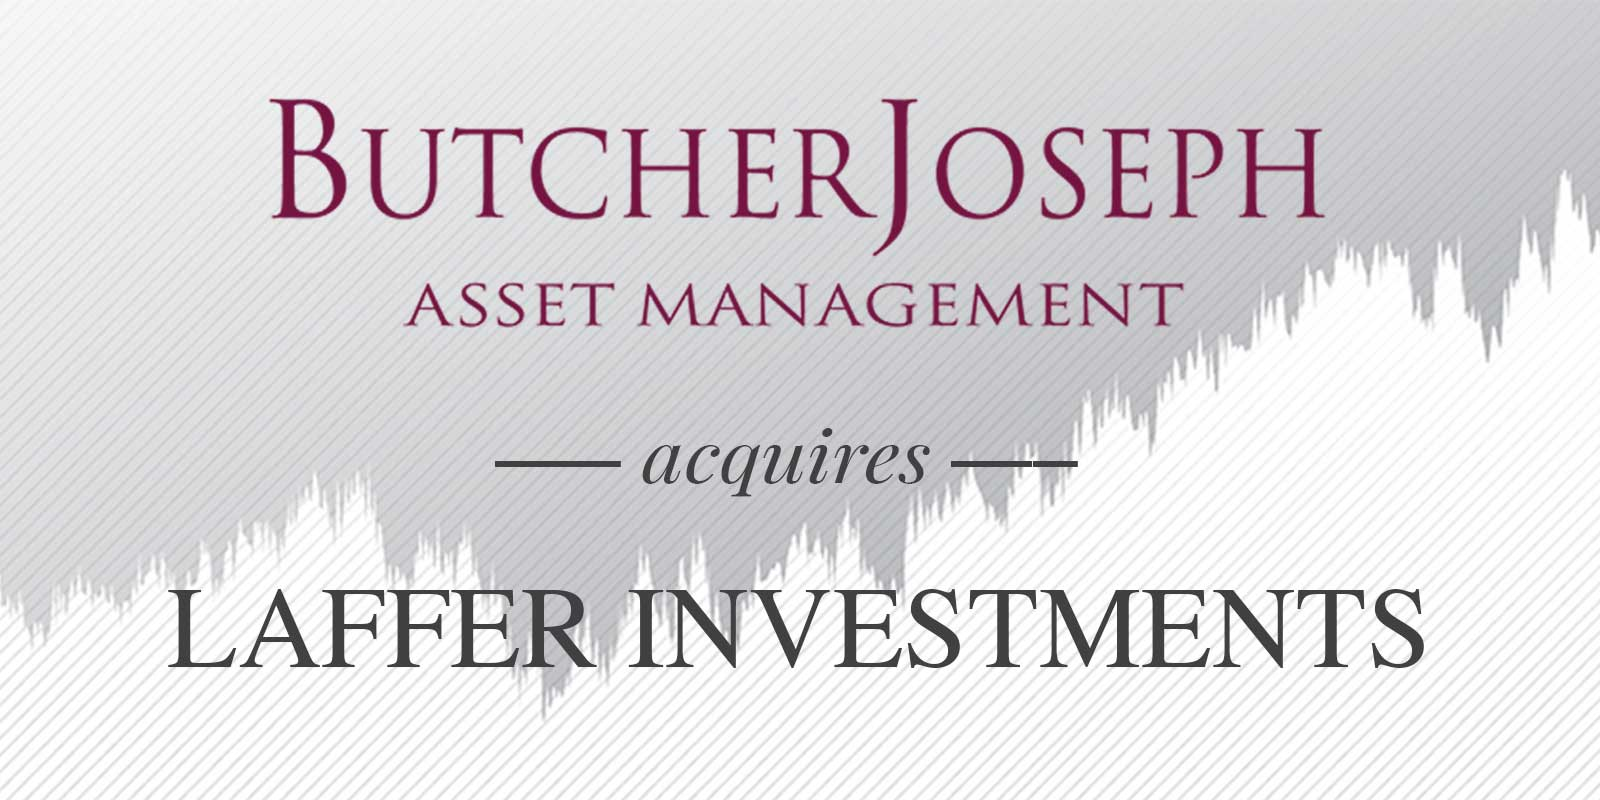 Laffer investments nashville tn events bushmaster investment